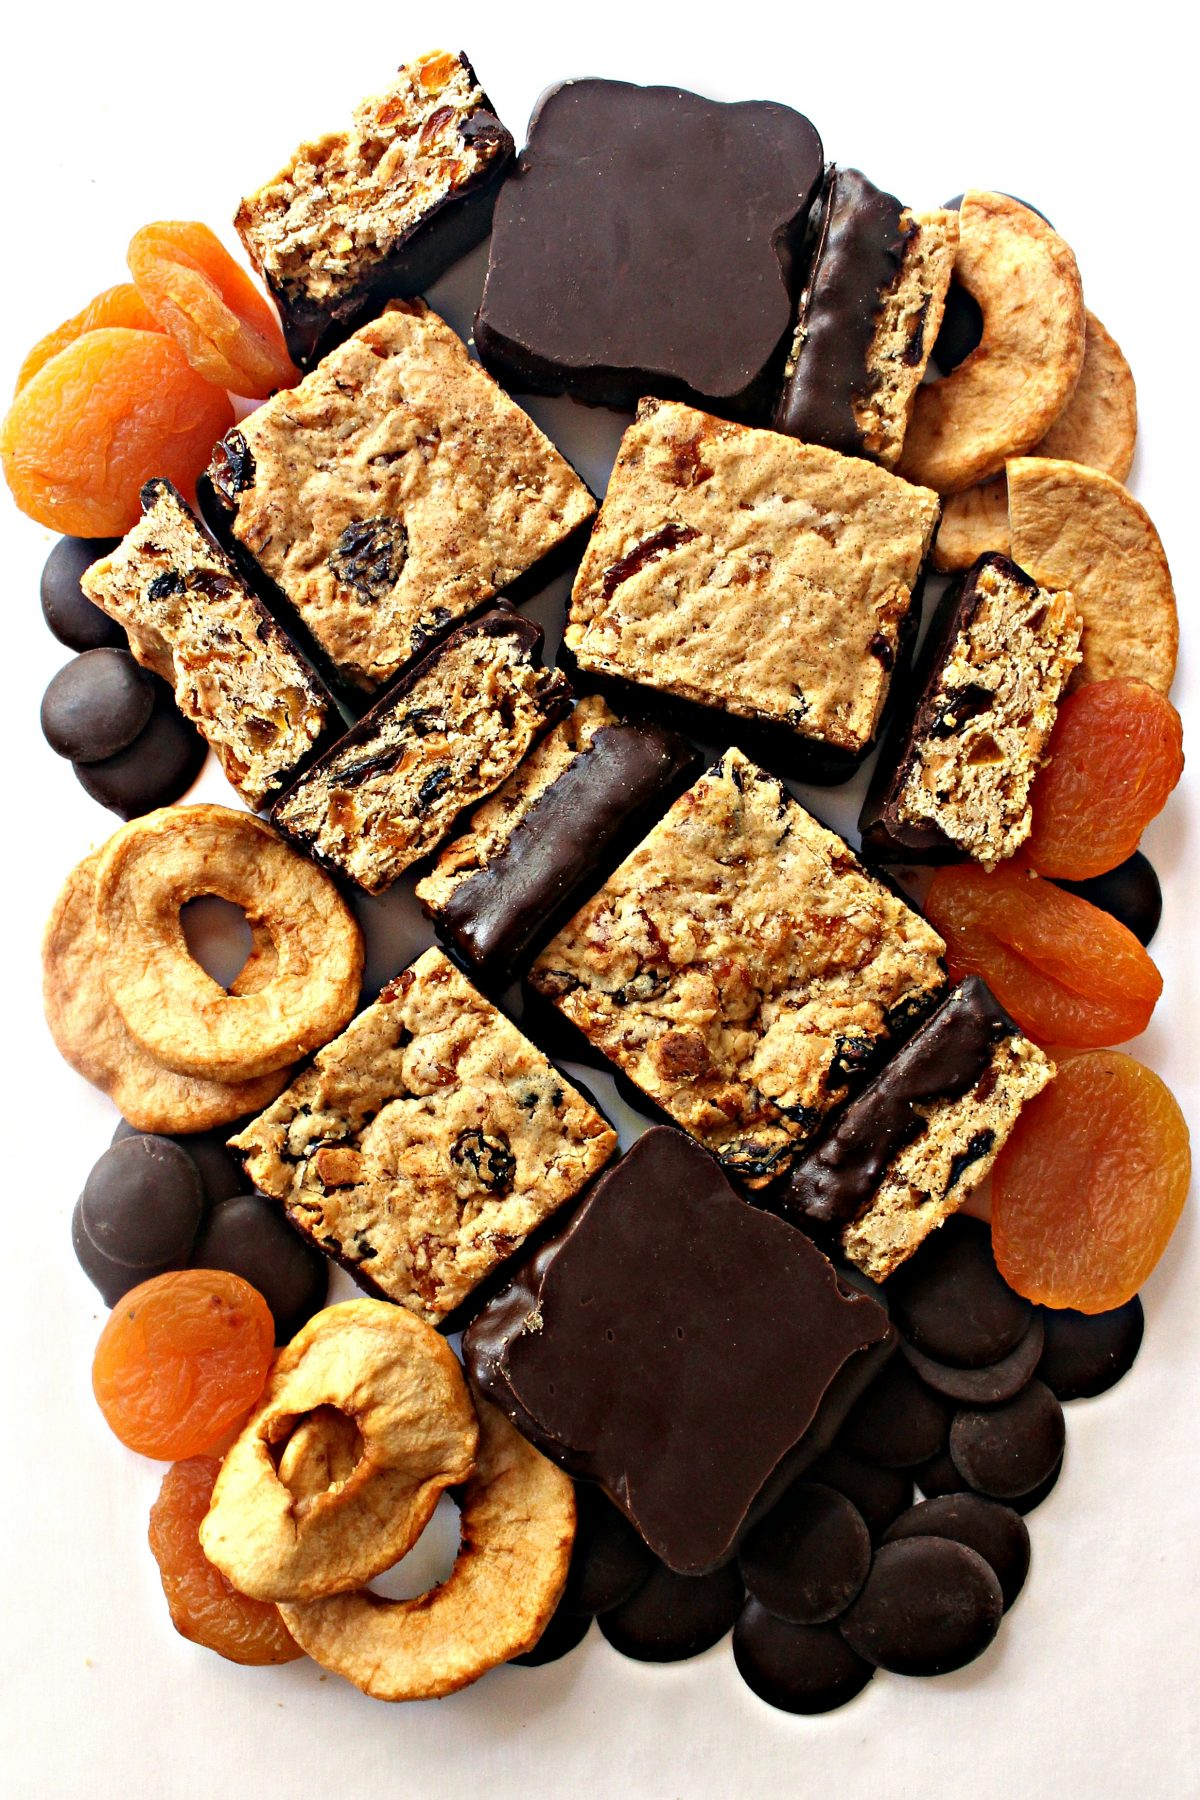 Oatmeal Fruit Bars surrounded by dried fruit and chocolate discs